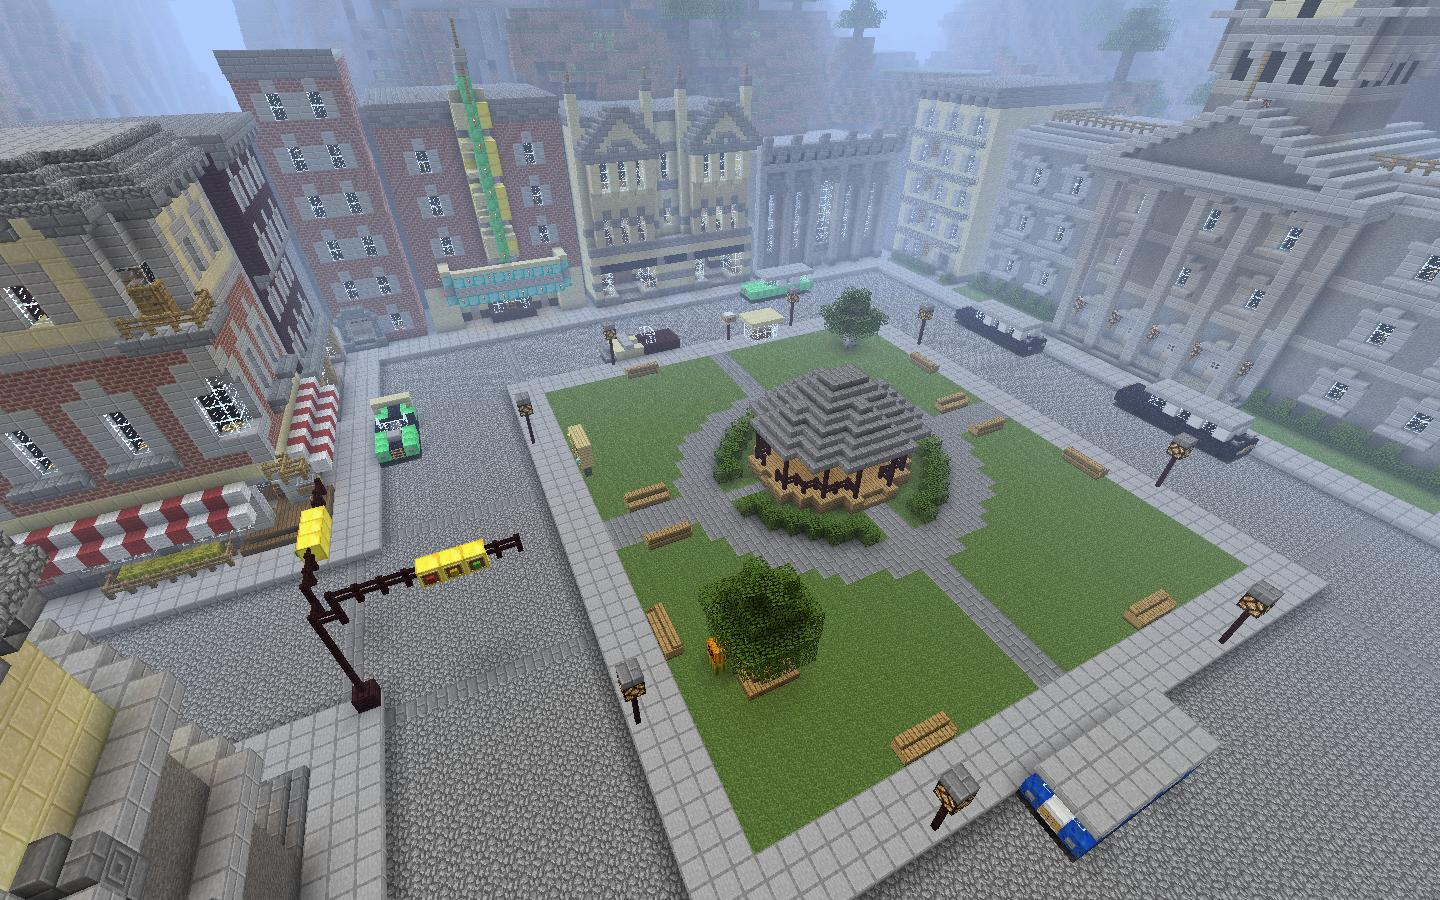 http://minecraft-forum.net/wp-content/uploads/2013/08/e91cd__A-Day-in-Tuscarora-Map-4.jpg